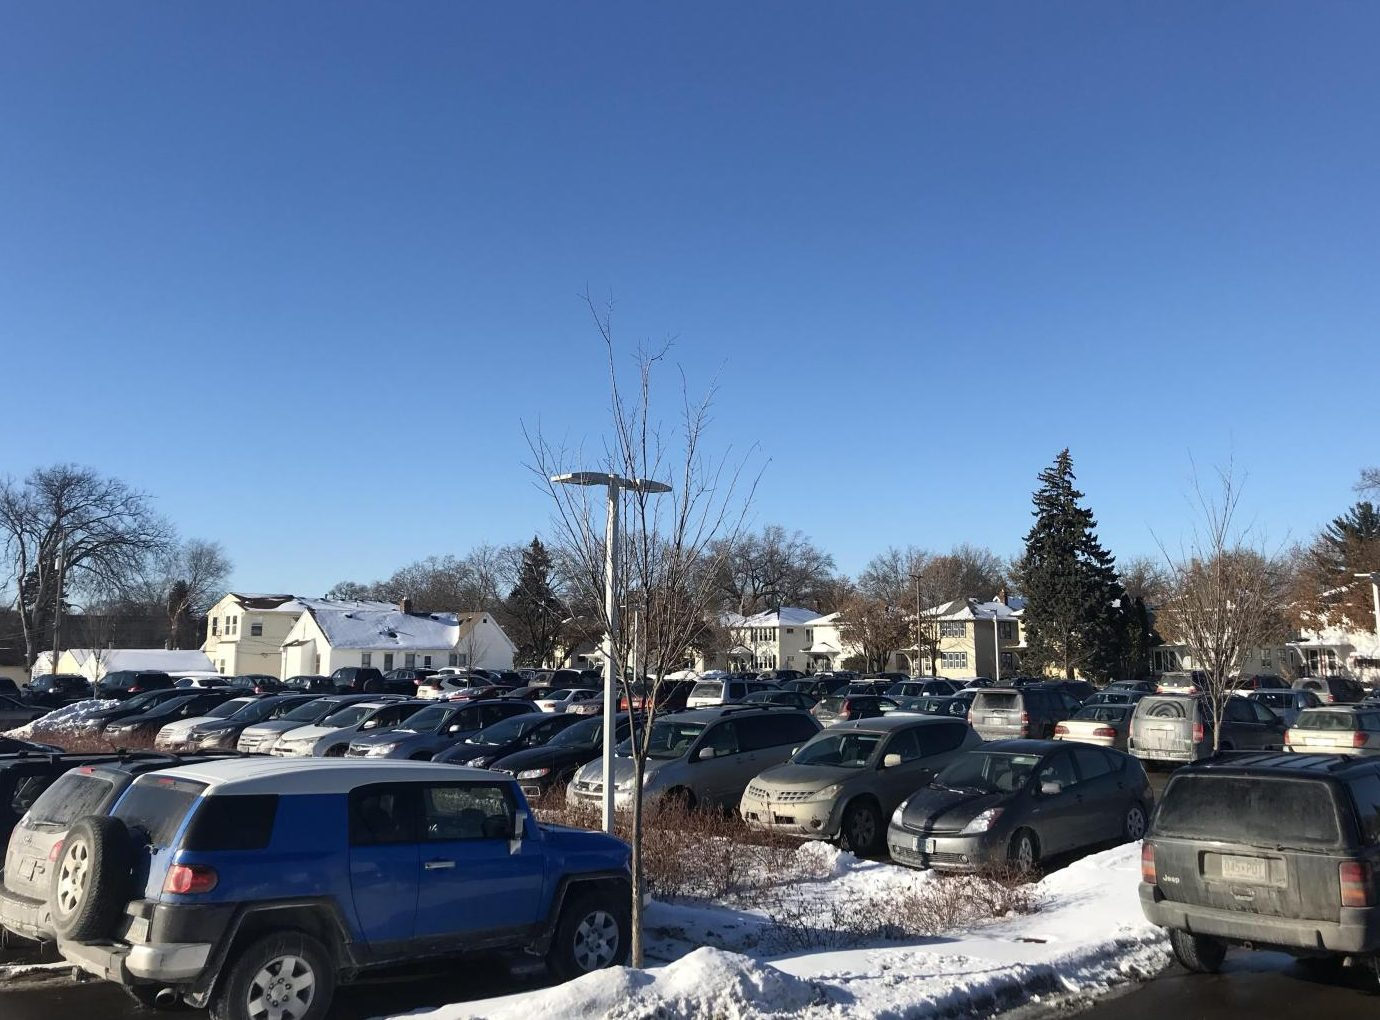 It's hard to find a parking space on campus, especially when street parking is closed for snow removal. Carpooling could solve this problem.